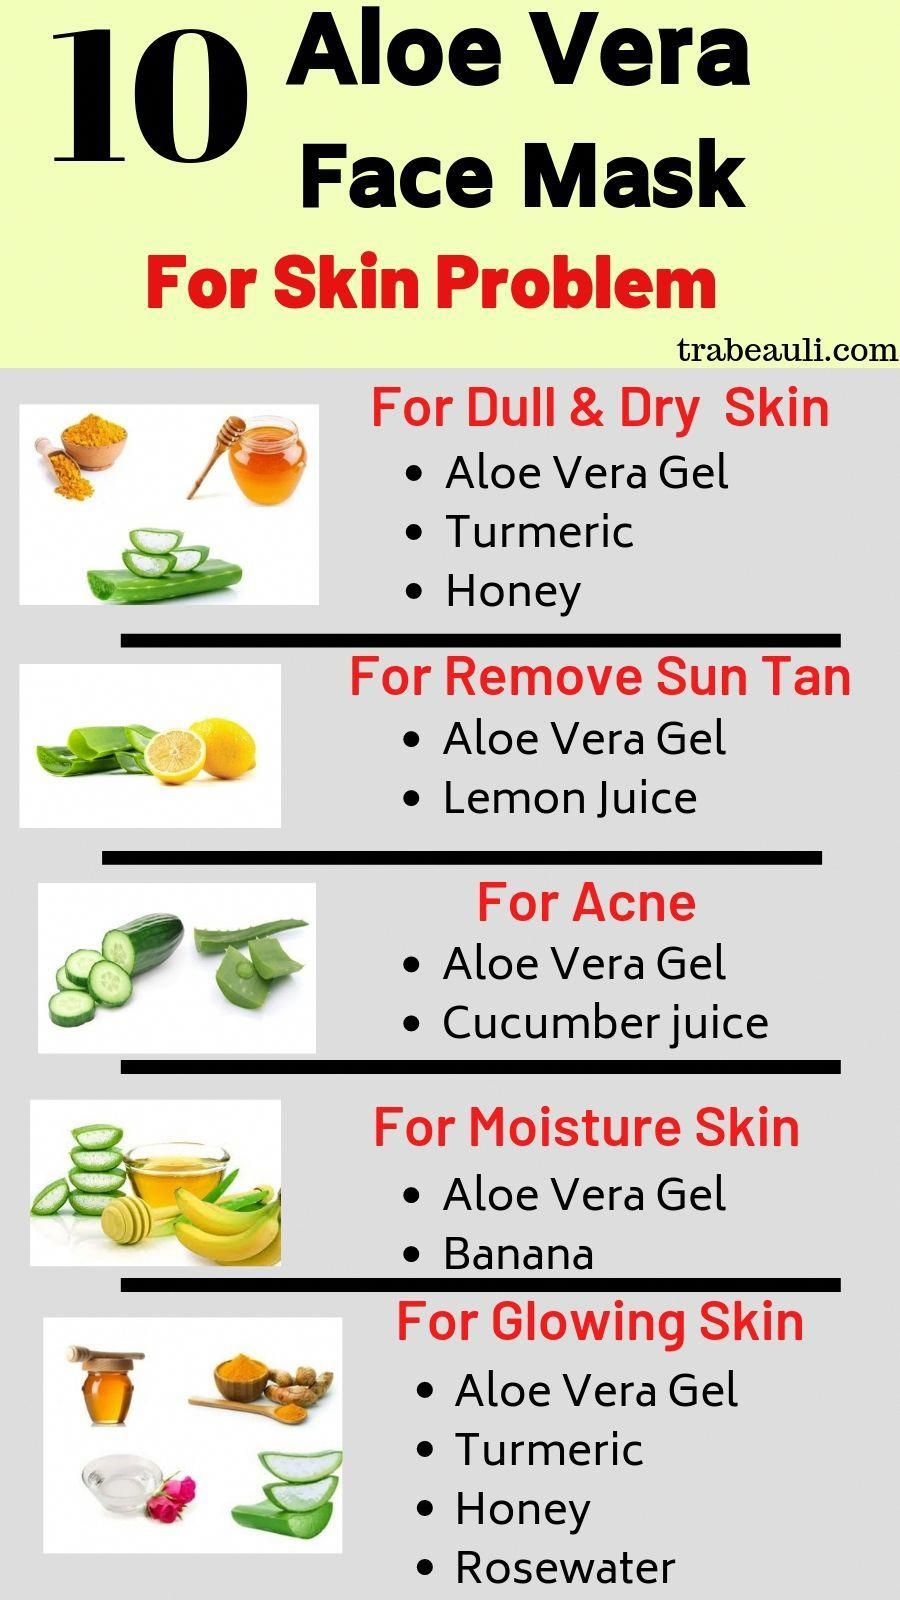 10 DIY Aloe Vera Face Mask For Skin care and Acne  Aloe vera face